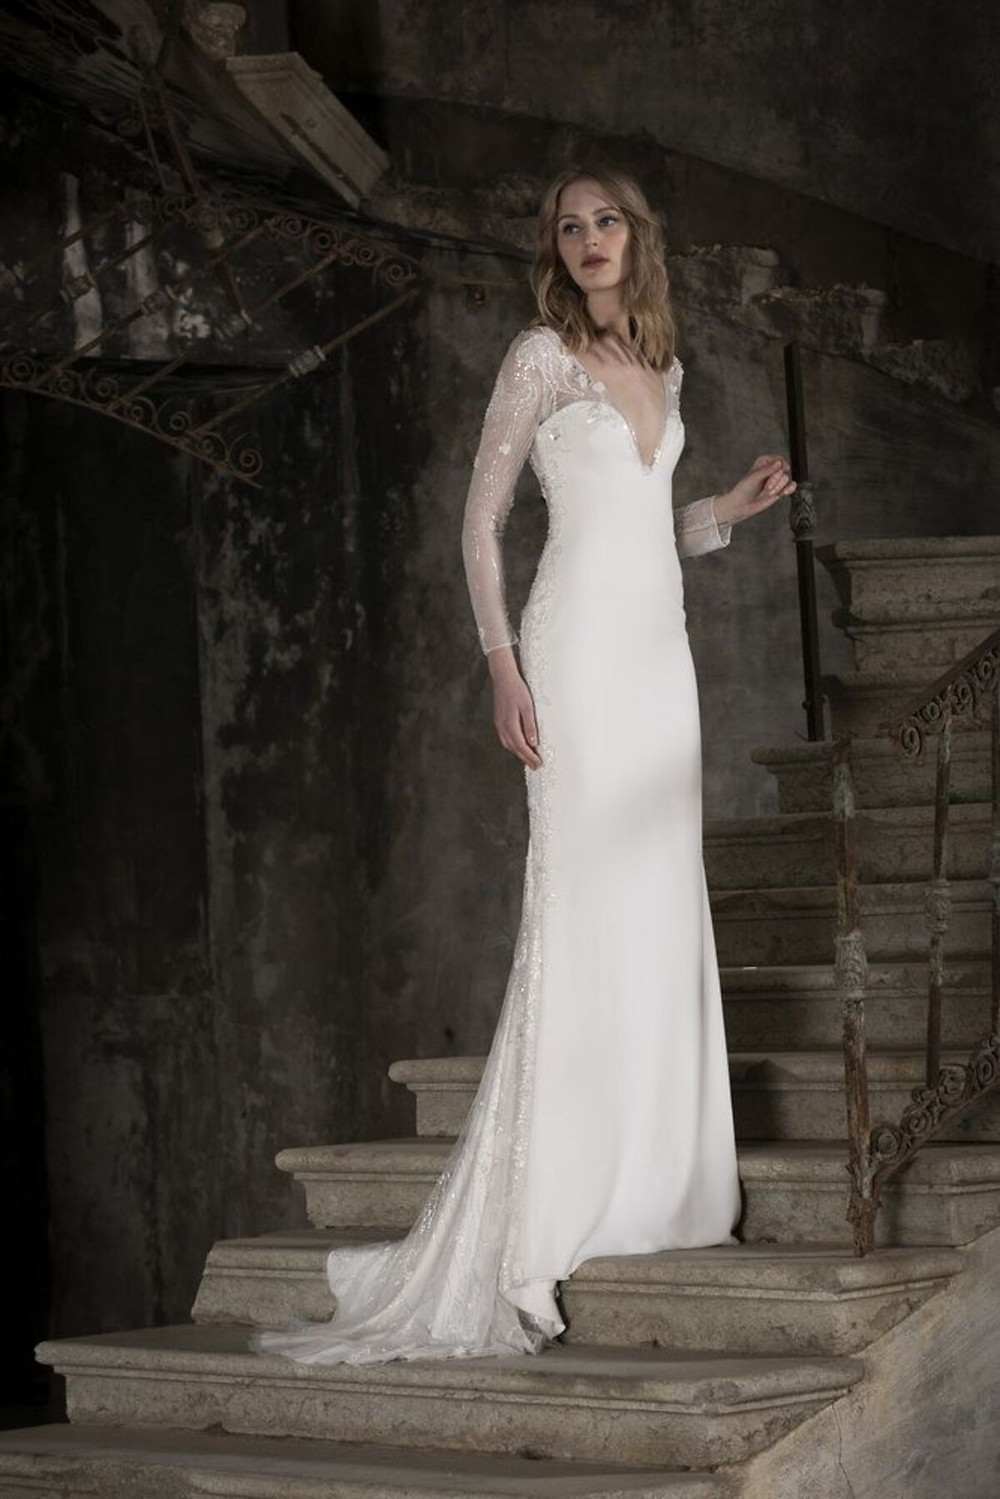 A fitted wedding dress intricately enriched with beaded embroidery, featuring a plunging neckline and long sleeves.